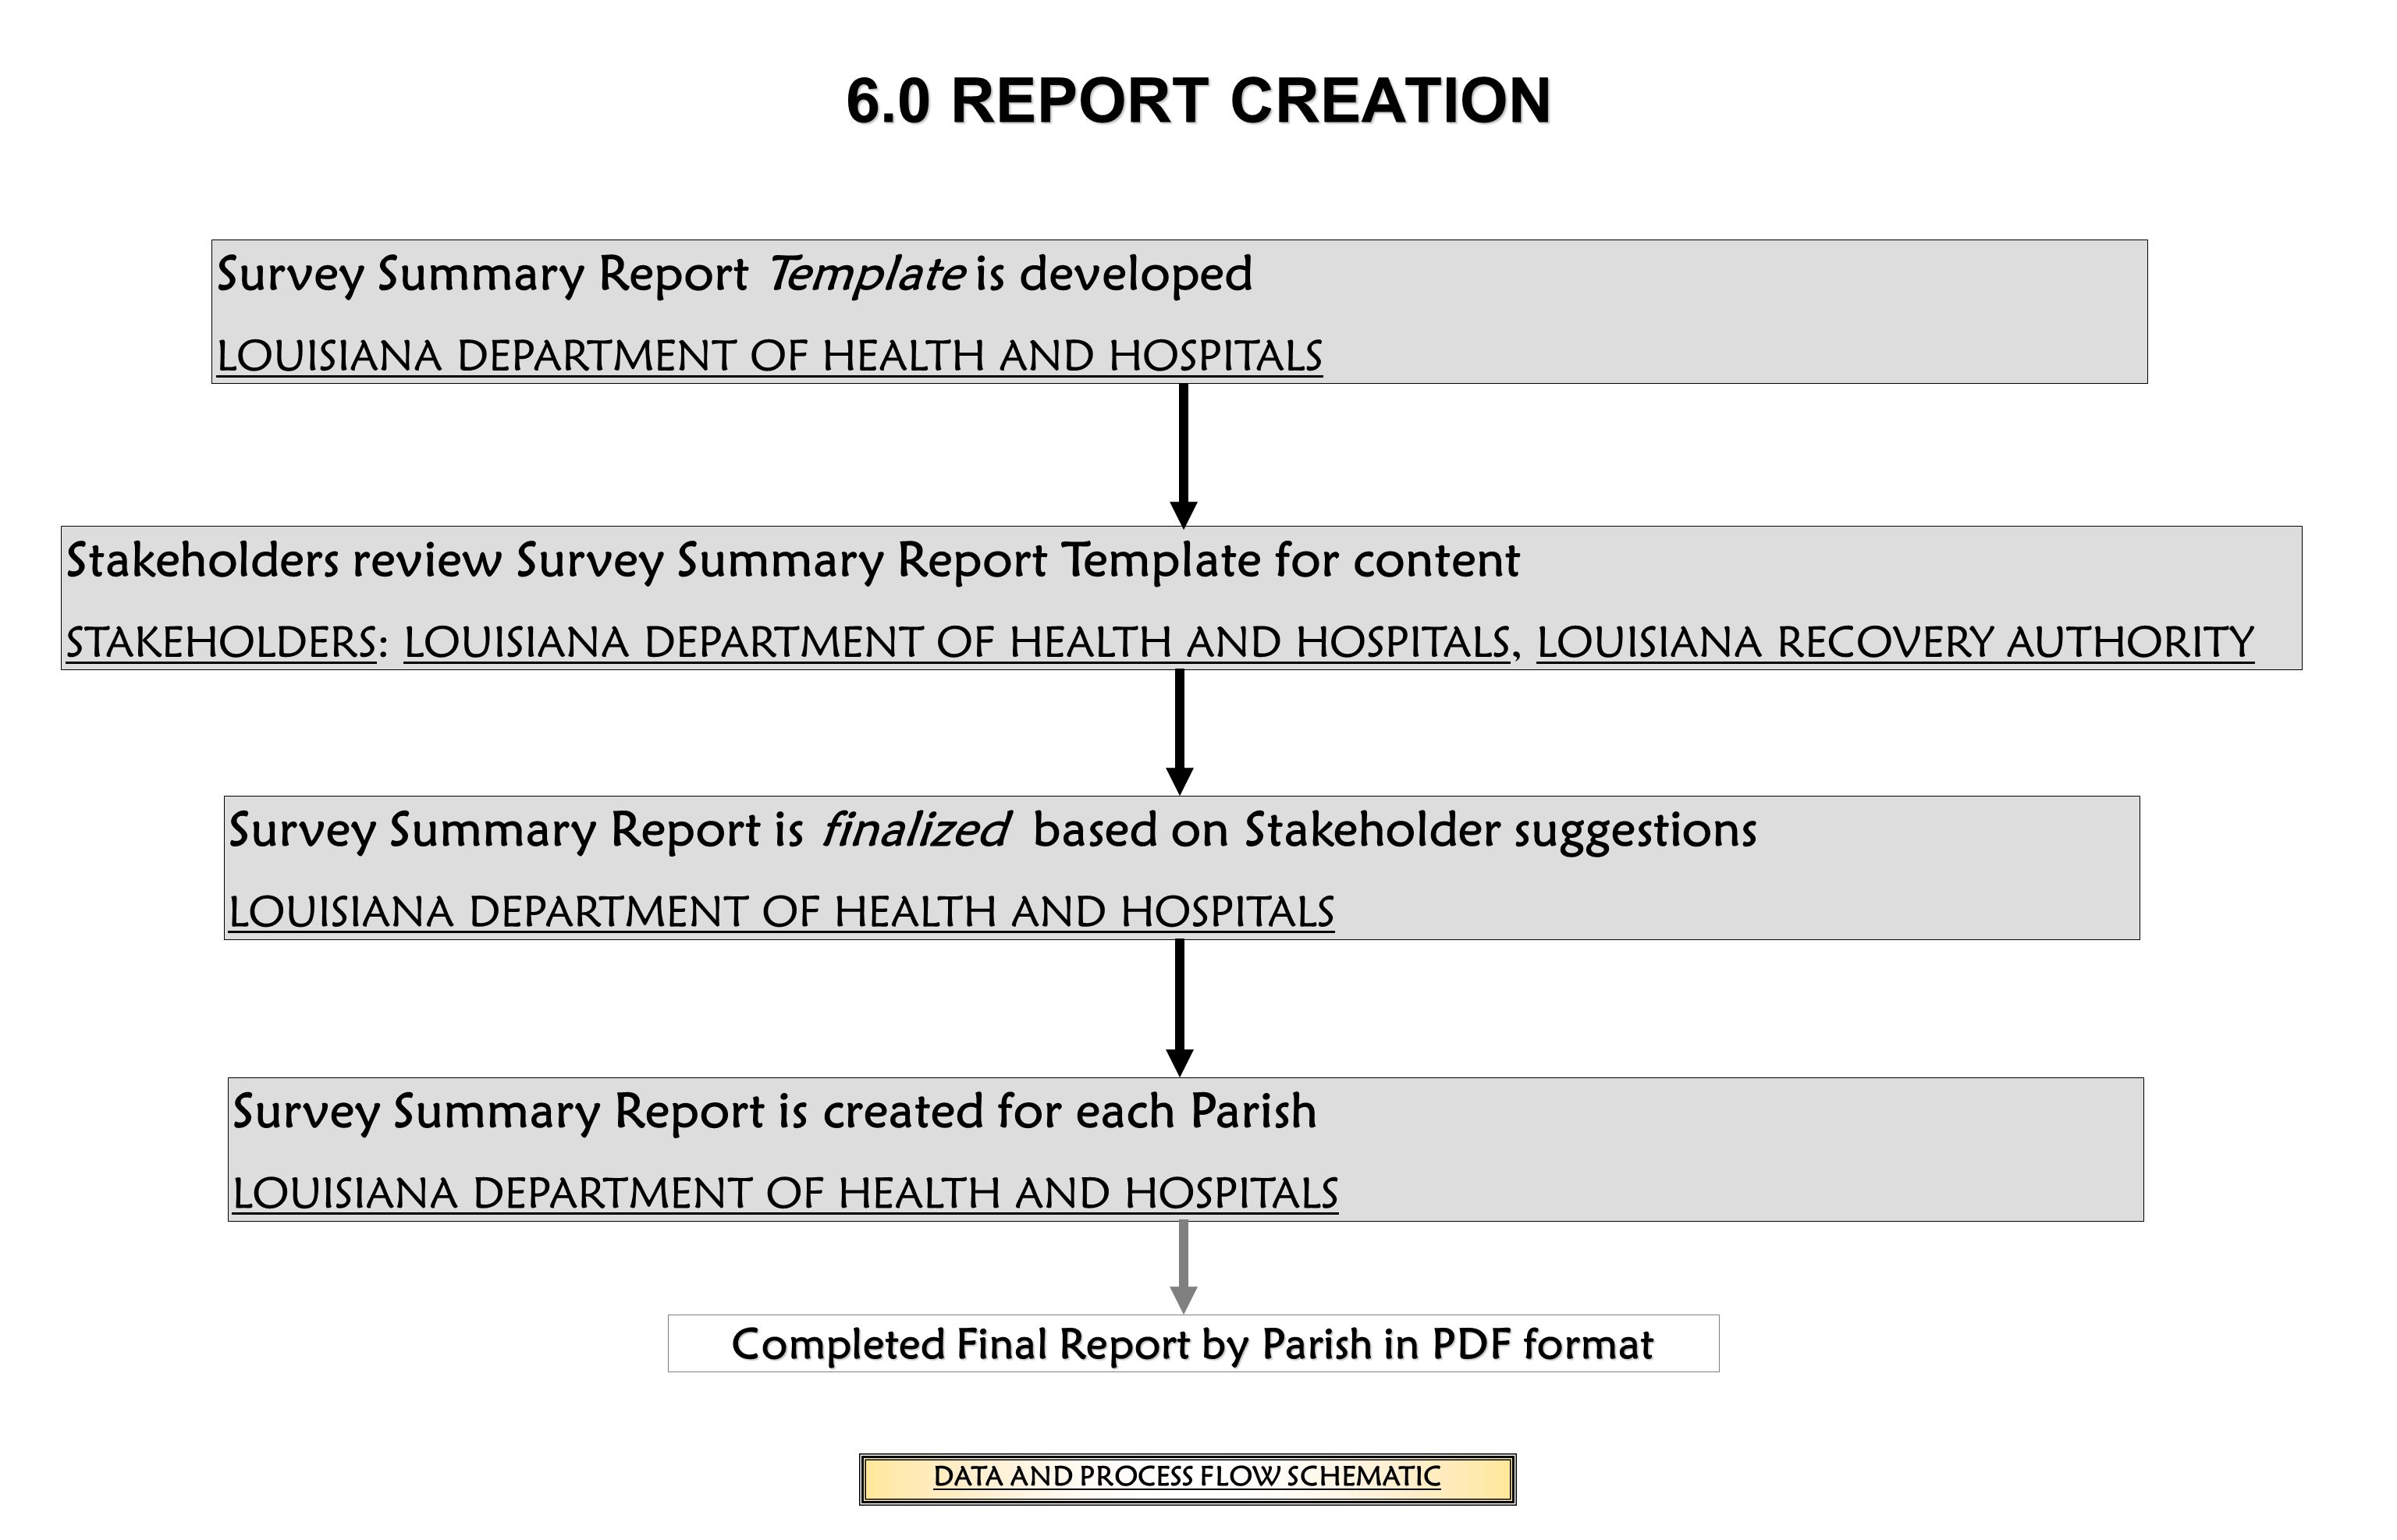 6.0 REPORT CREATION Survey Summary Report Template is developed LOUISIANA DEPARTMENT OF HEALTH AND HOSPITALS Stakeholders review Survey Summary Report Template for content STAKEHOLDERSSTAKEHOLDERS: LOUISIANA DEPARTMENT OF HEALTH AND HOSPITALS, LOUISIANA RECOVERY AUTHORITYLOUISIANA DEPARTMENT OF HEALTH AND HOSPITALSLOUISIANA RECOVERY AUTHORITY Survey Summary Report is finalized based on Stakeholder suggestions LOUISIANA DEPARTMENT OF HEALTH AND HOSPITALS Survey Summary Report is created for each Parish LOUISIANA DEPARTMENT OF HEALTH AND HOSPITALS Completed Final Report by Parish in PDF format DATA AND PROCESS FLOW SCHEMATIC